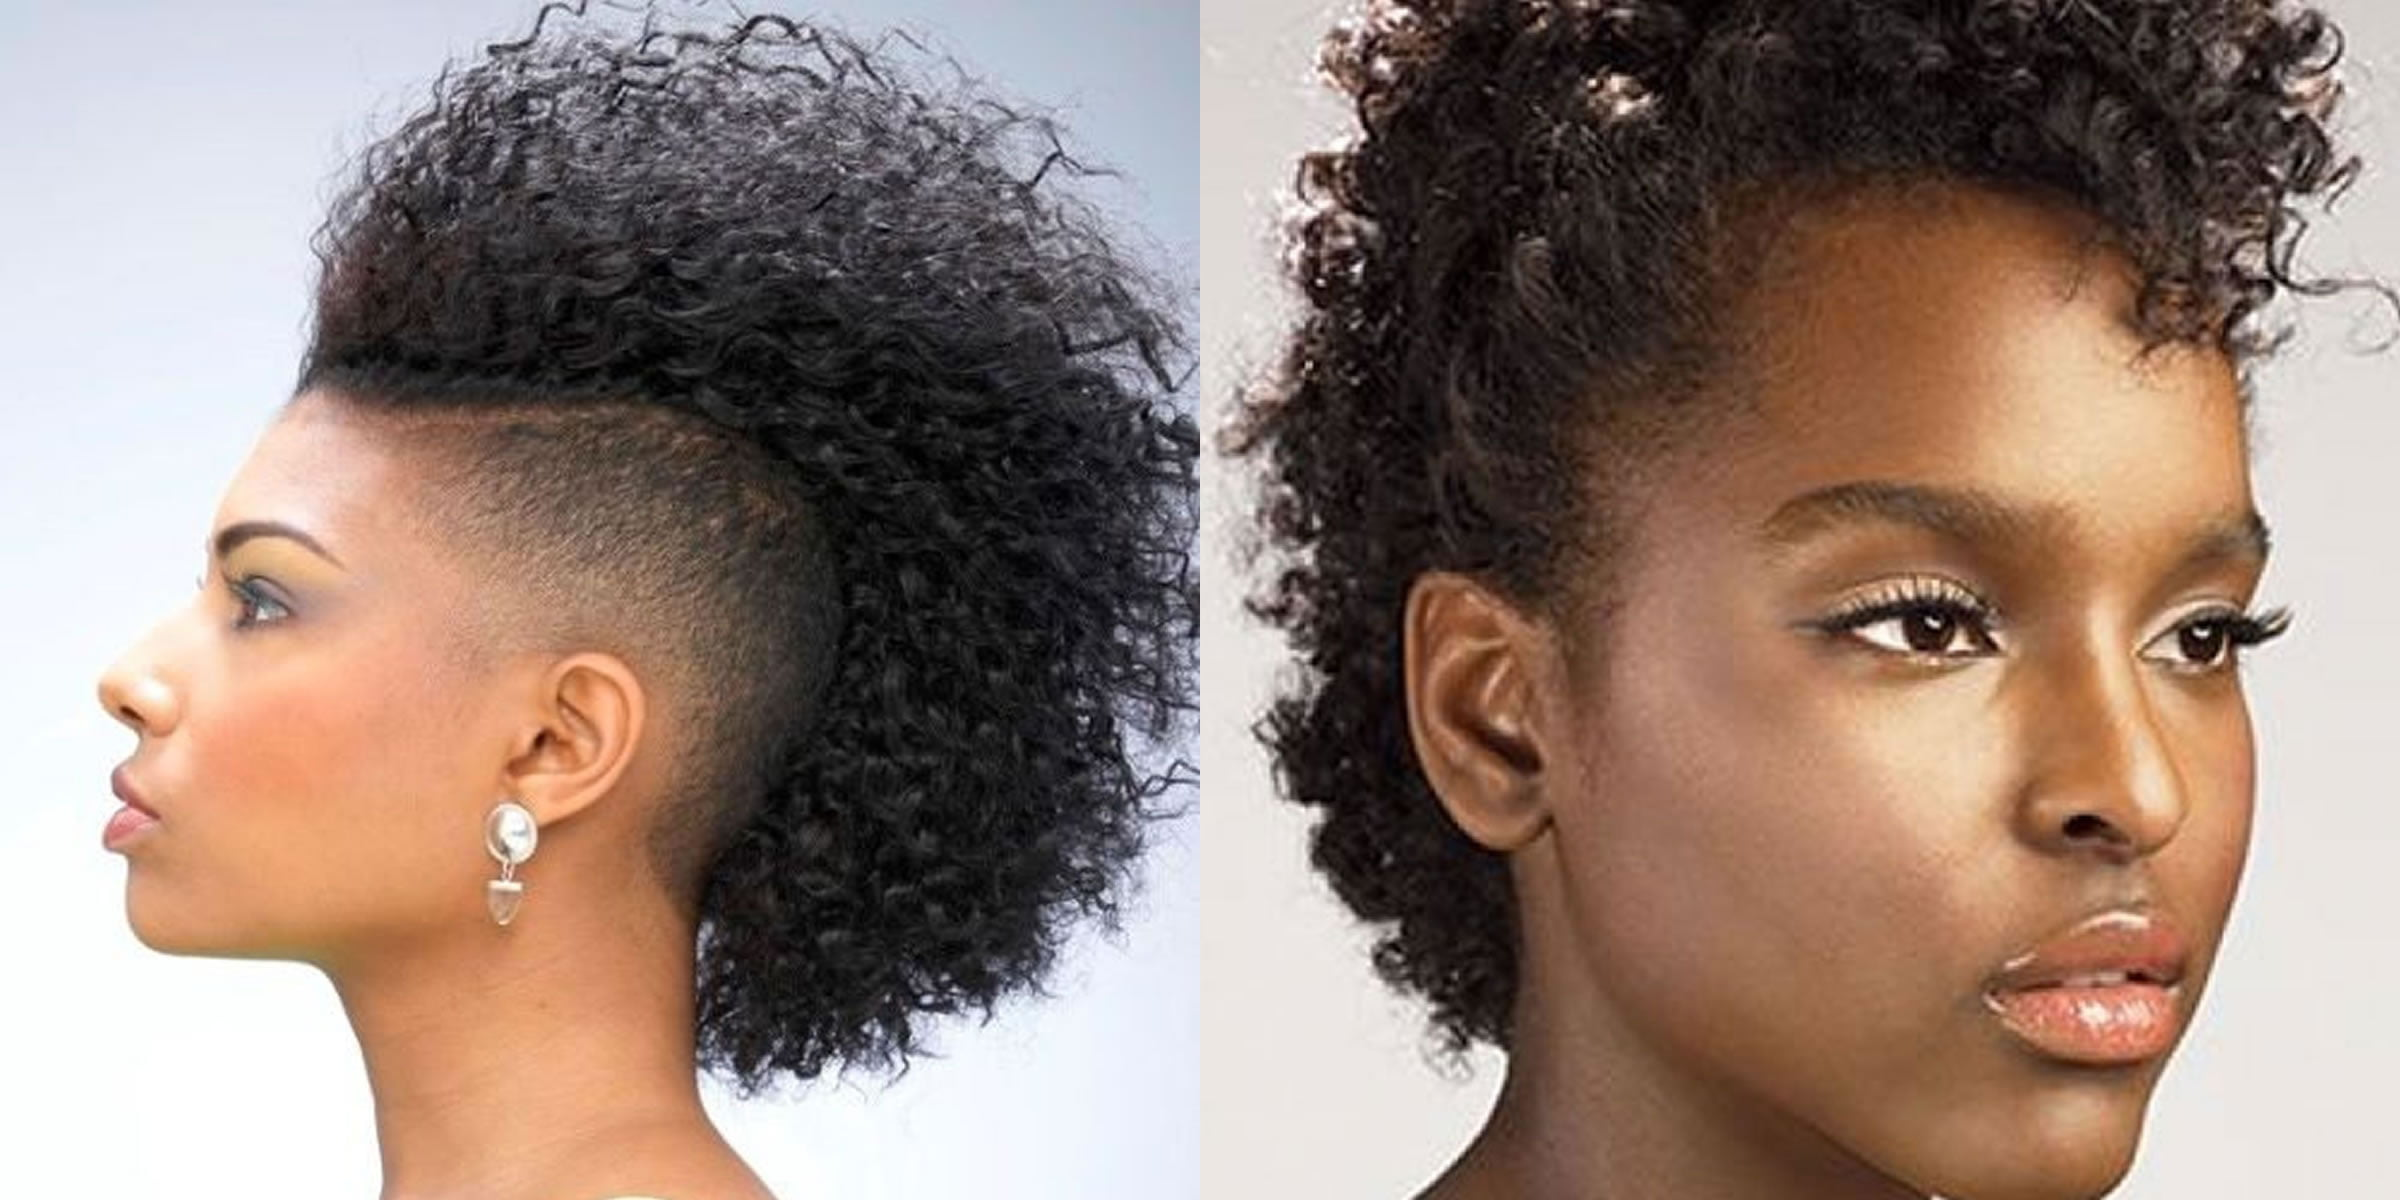 Mohawk Hairstyles for Black Women 2017-2018 Hair Colors for Afro-American Women - Hair Colors